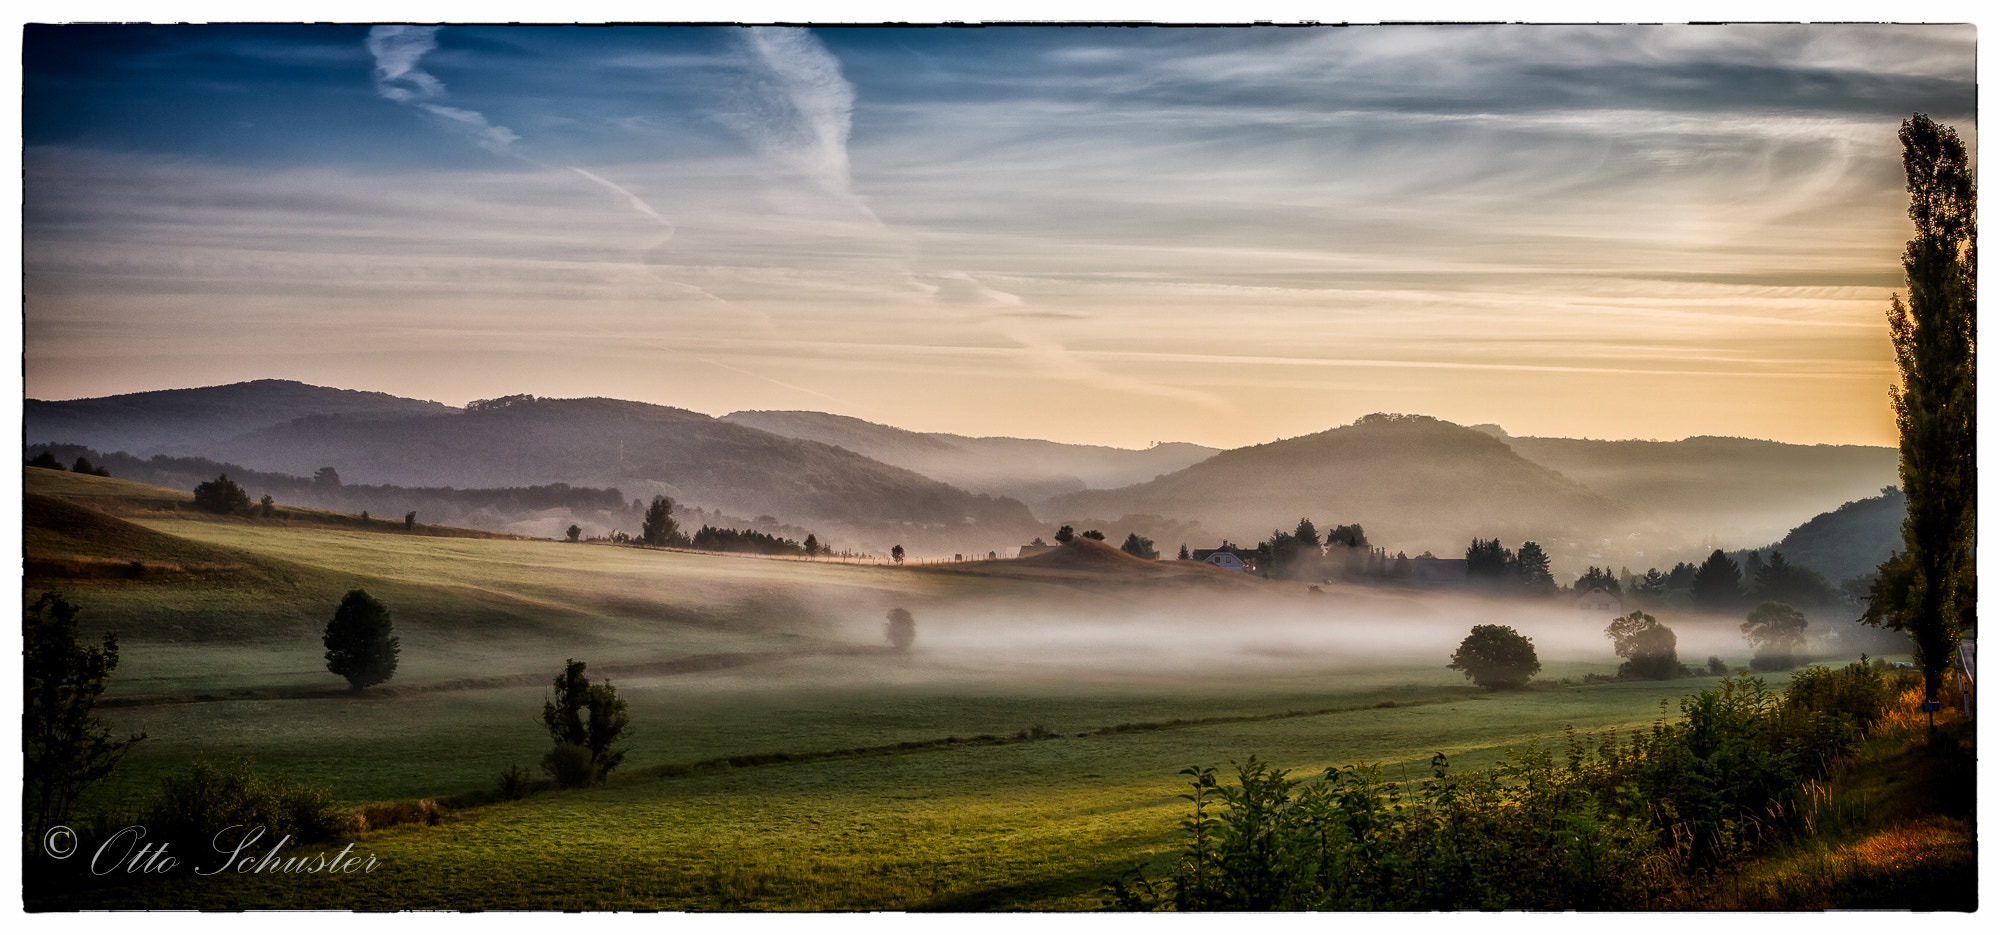 Photograph Early Morning - End of Summer by Otto Schuster on 500px